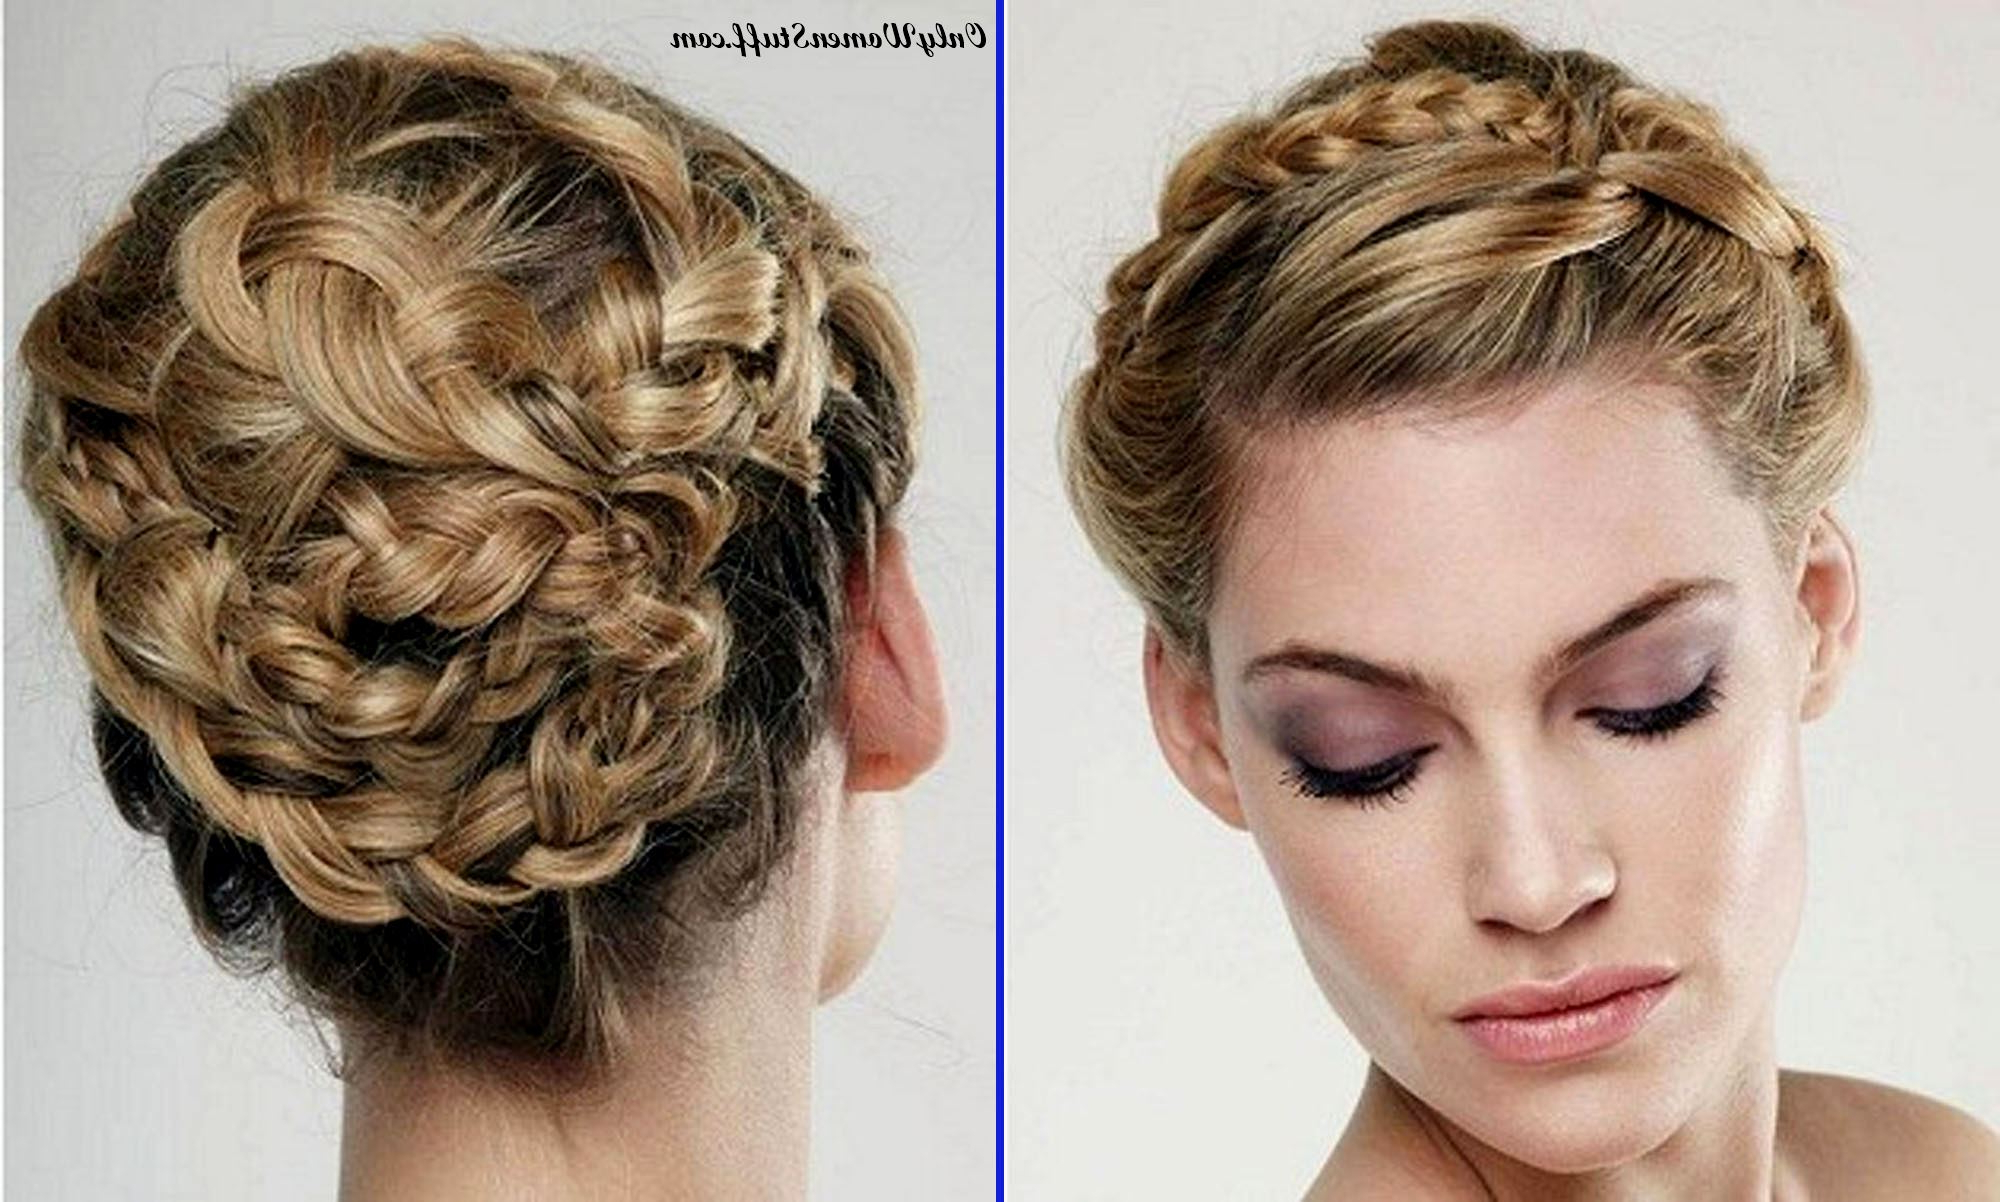 50+ Easy Prom Hairstyles & Updos Ideas (Stepstep) Regarding Cute Short Hairstyles For Homecoming (View 10 of 25)